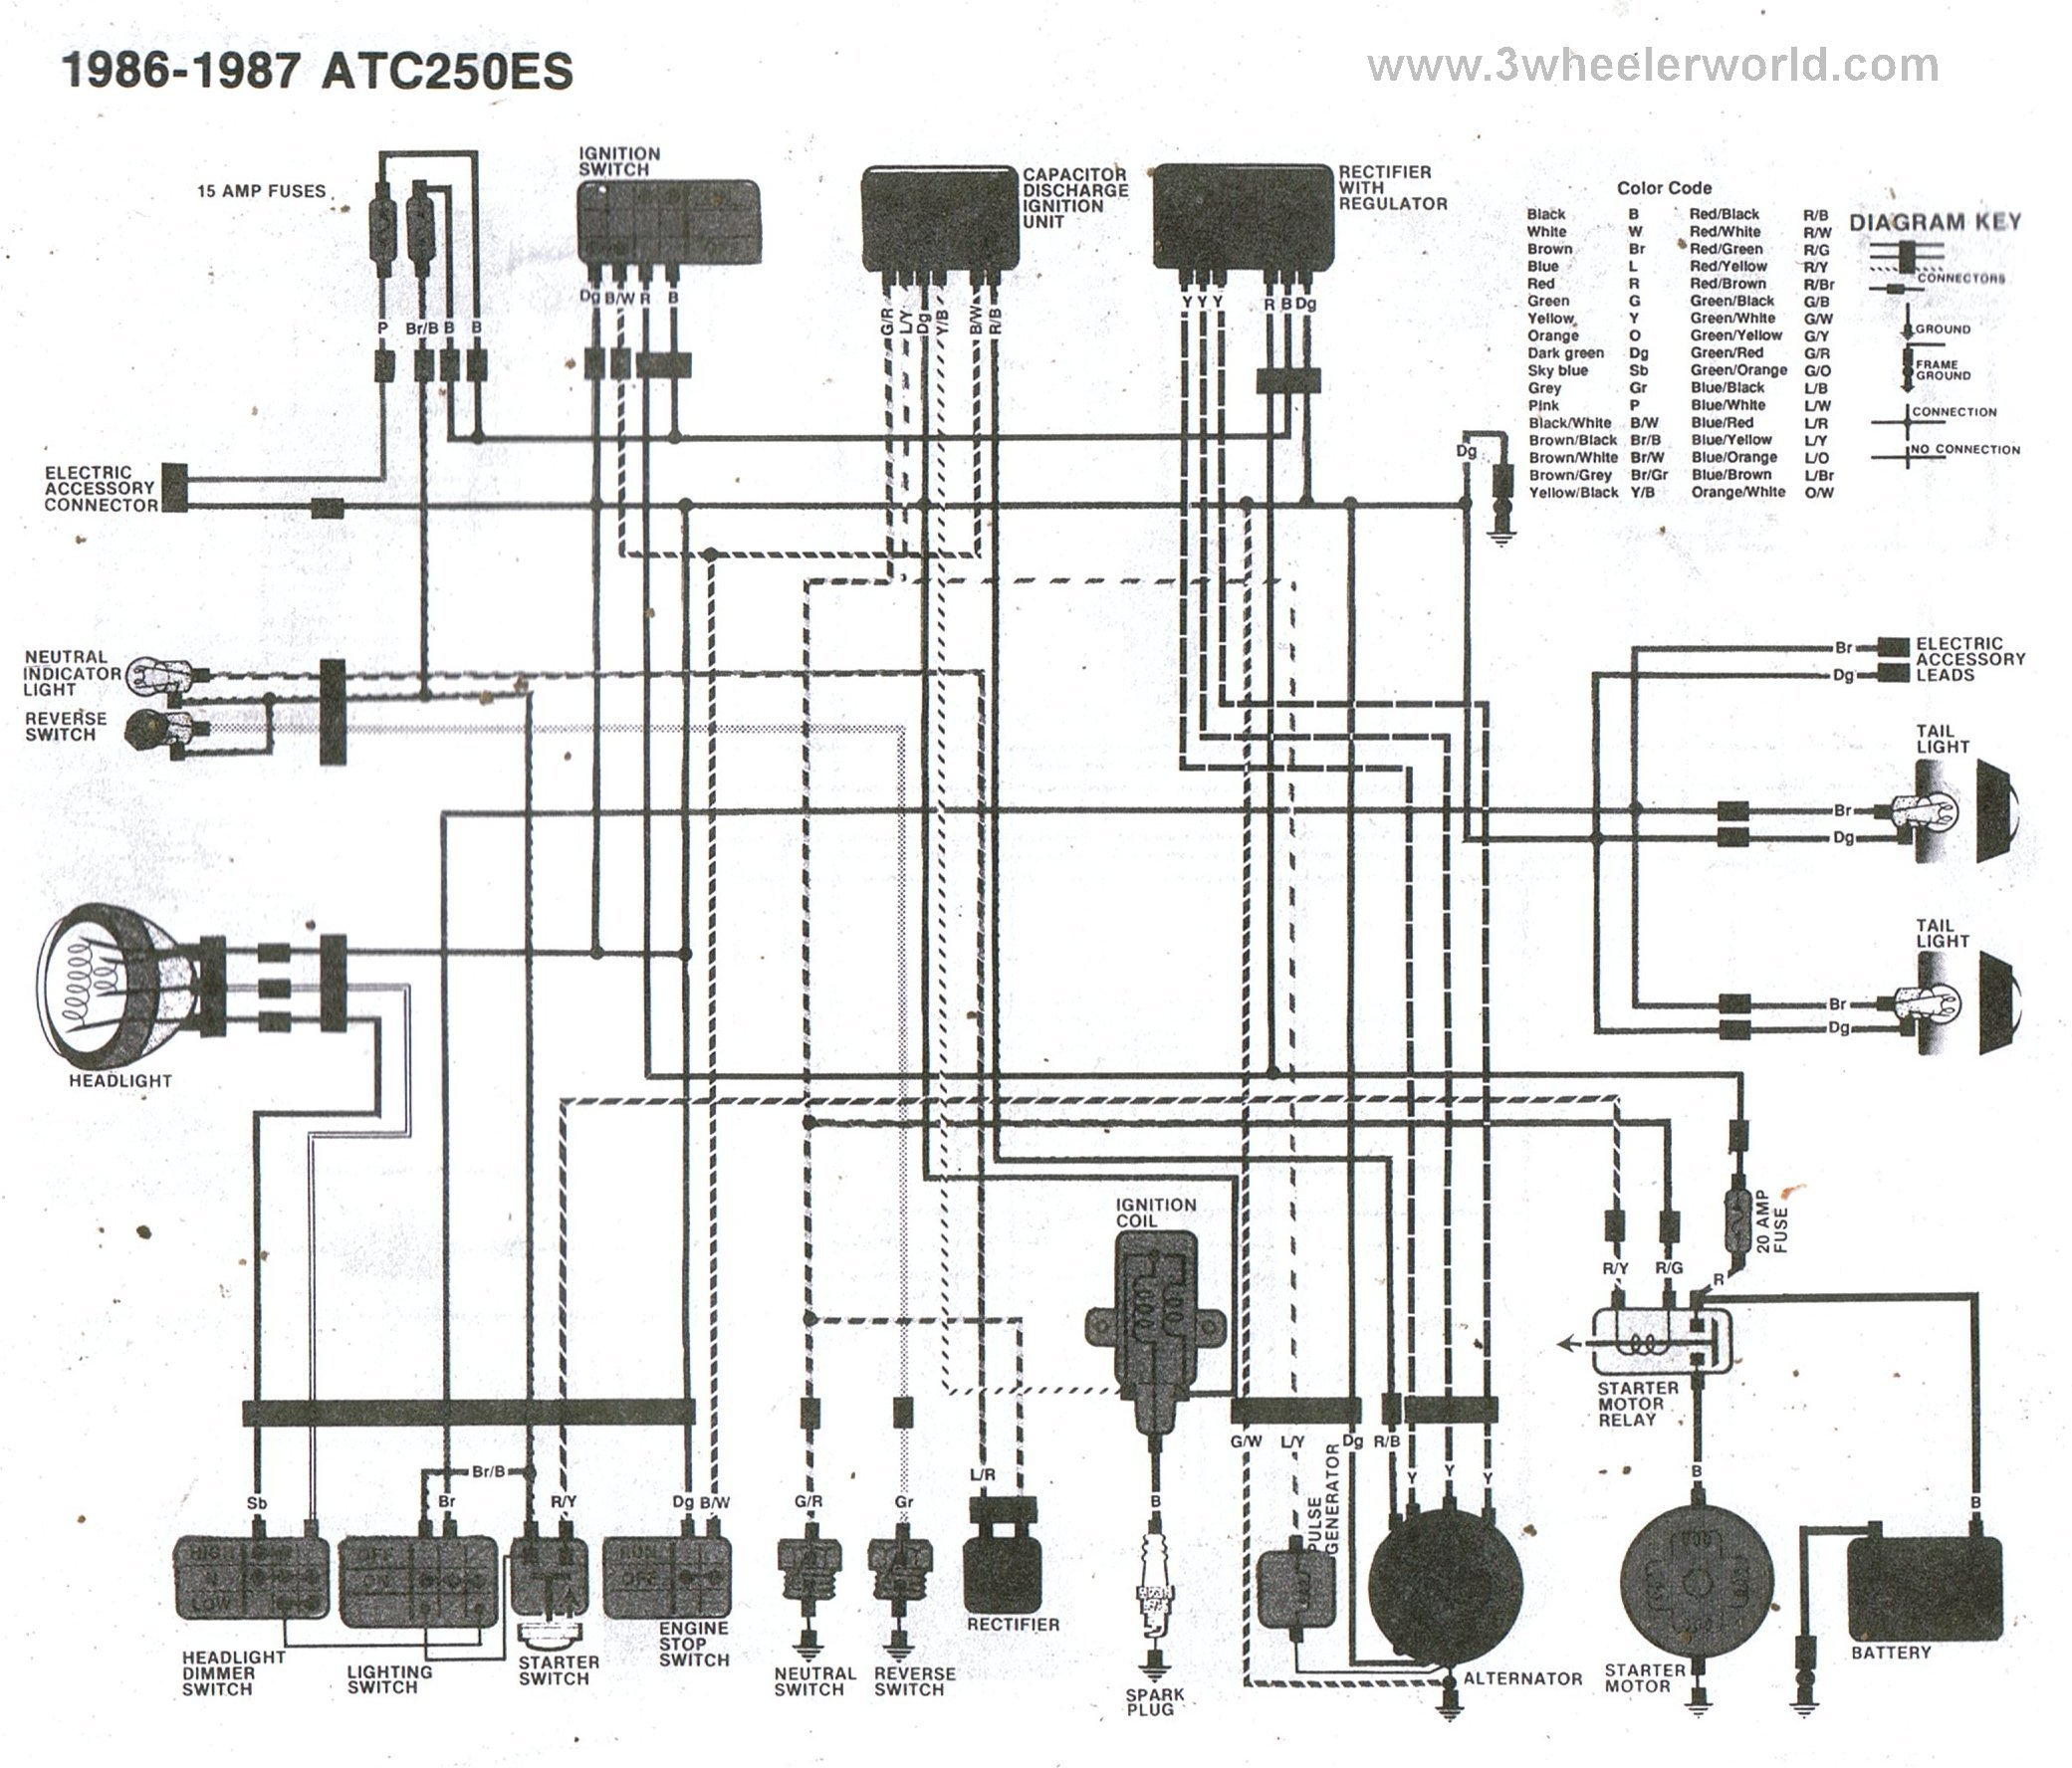 ATC250ESx86Thru87 honda atv 300 wiring diagram honda wiring diagrams instruction trx350 wiring diagram 1987 at suagrazia.org